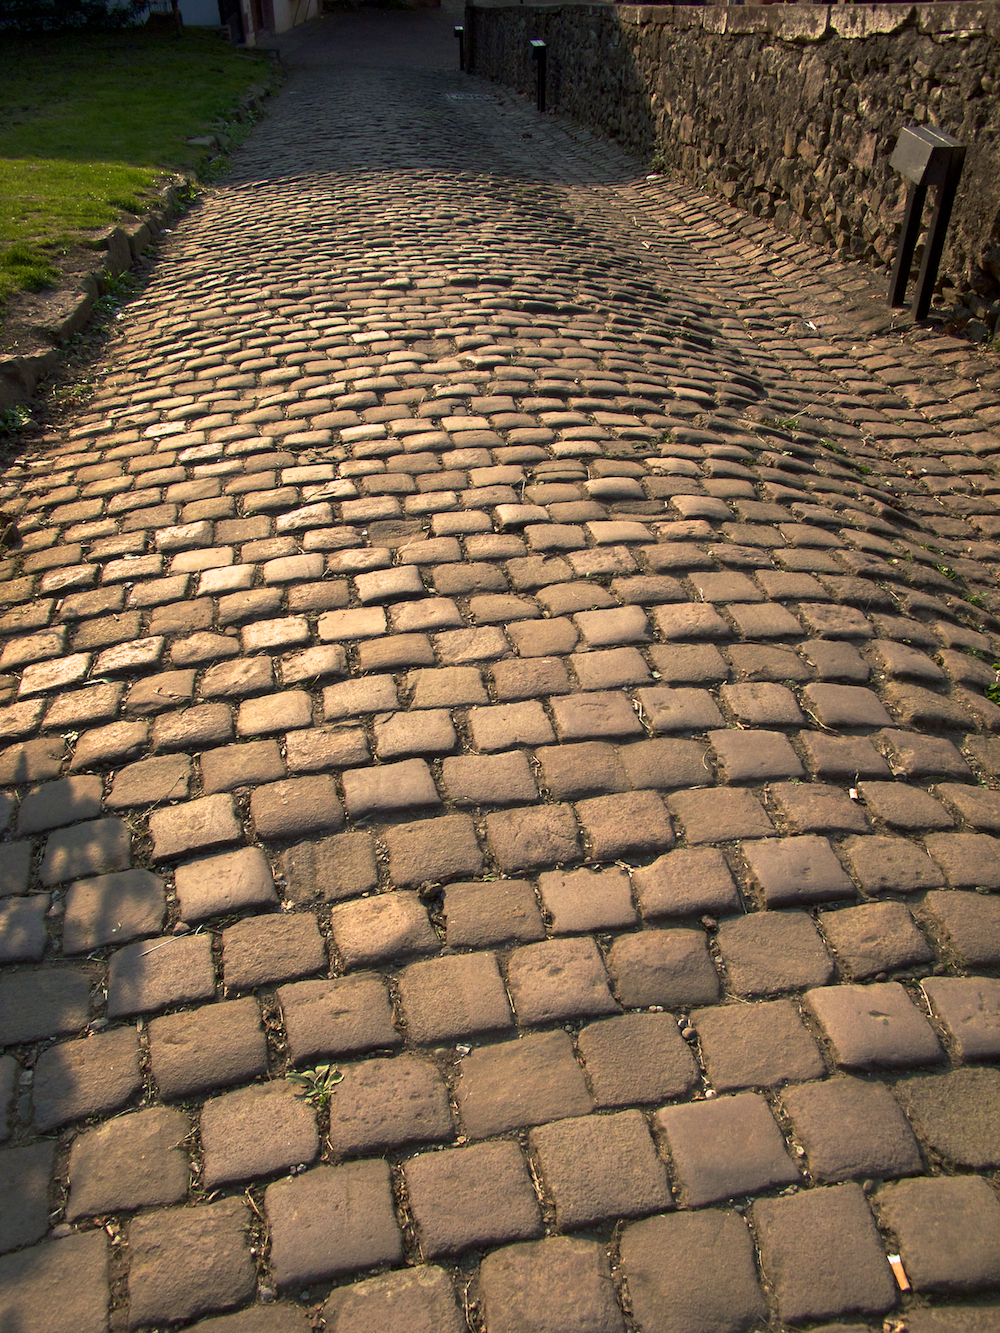 Paintings Of Cobblestone Paths : Cobblestone path movie search engine at